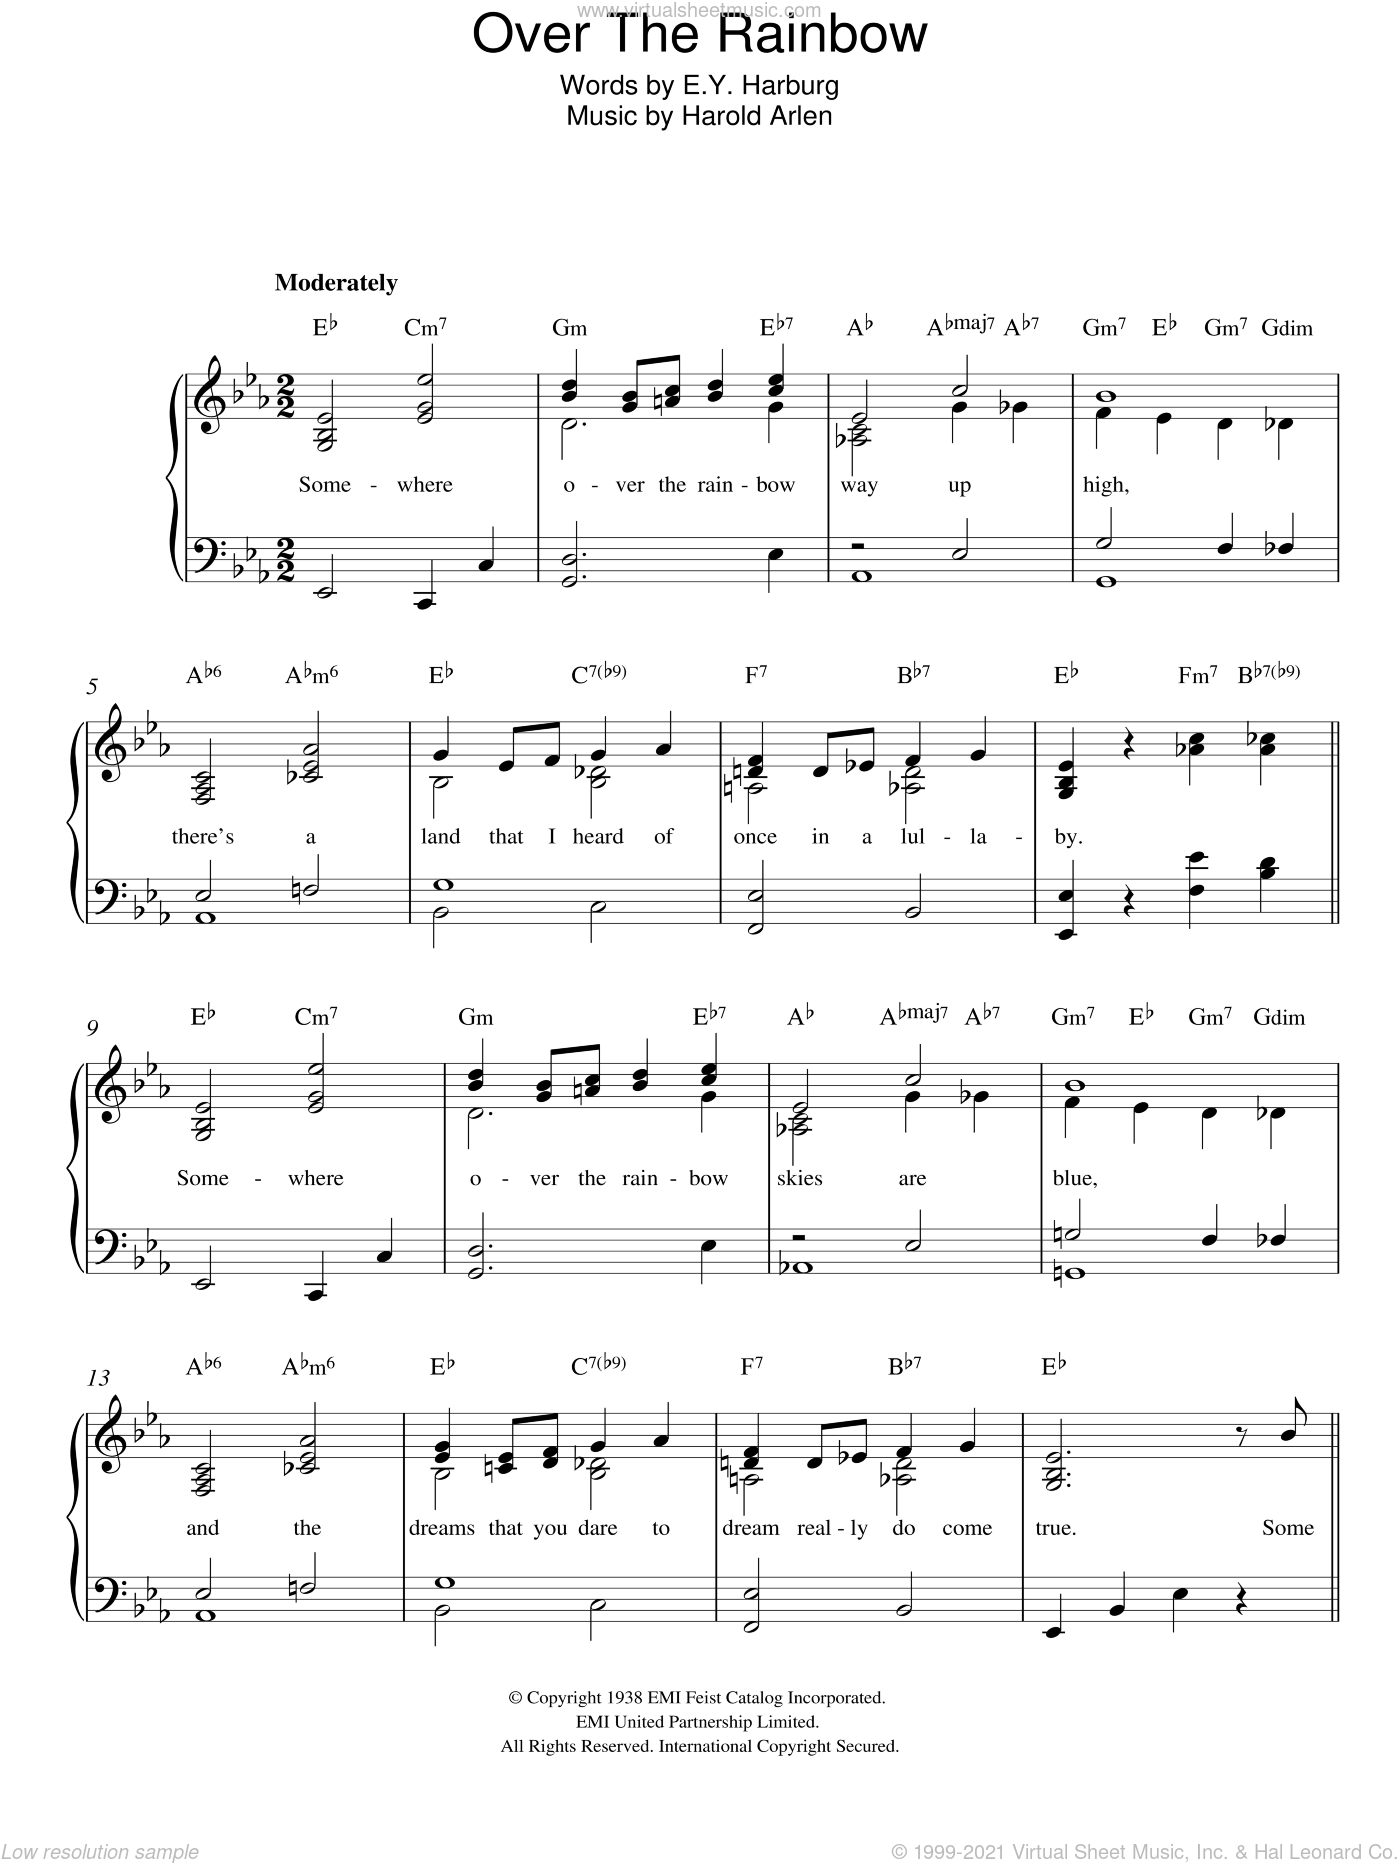 Over The Rainbow (from 'The Wizard Of Oz') sheet music for piano solo by E.Y. Harburg